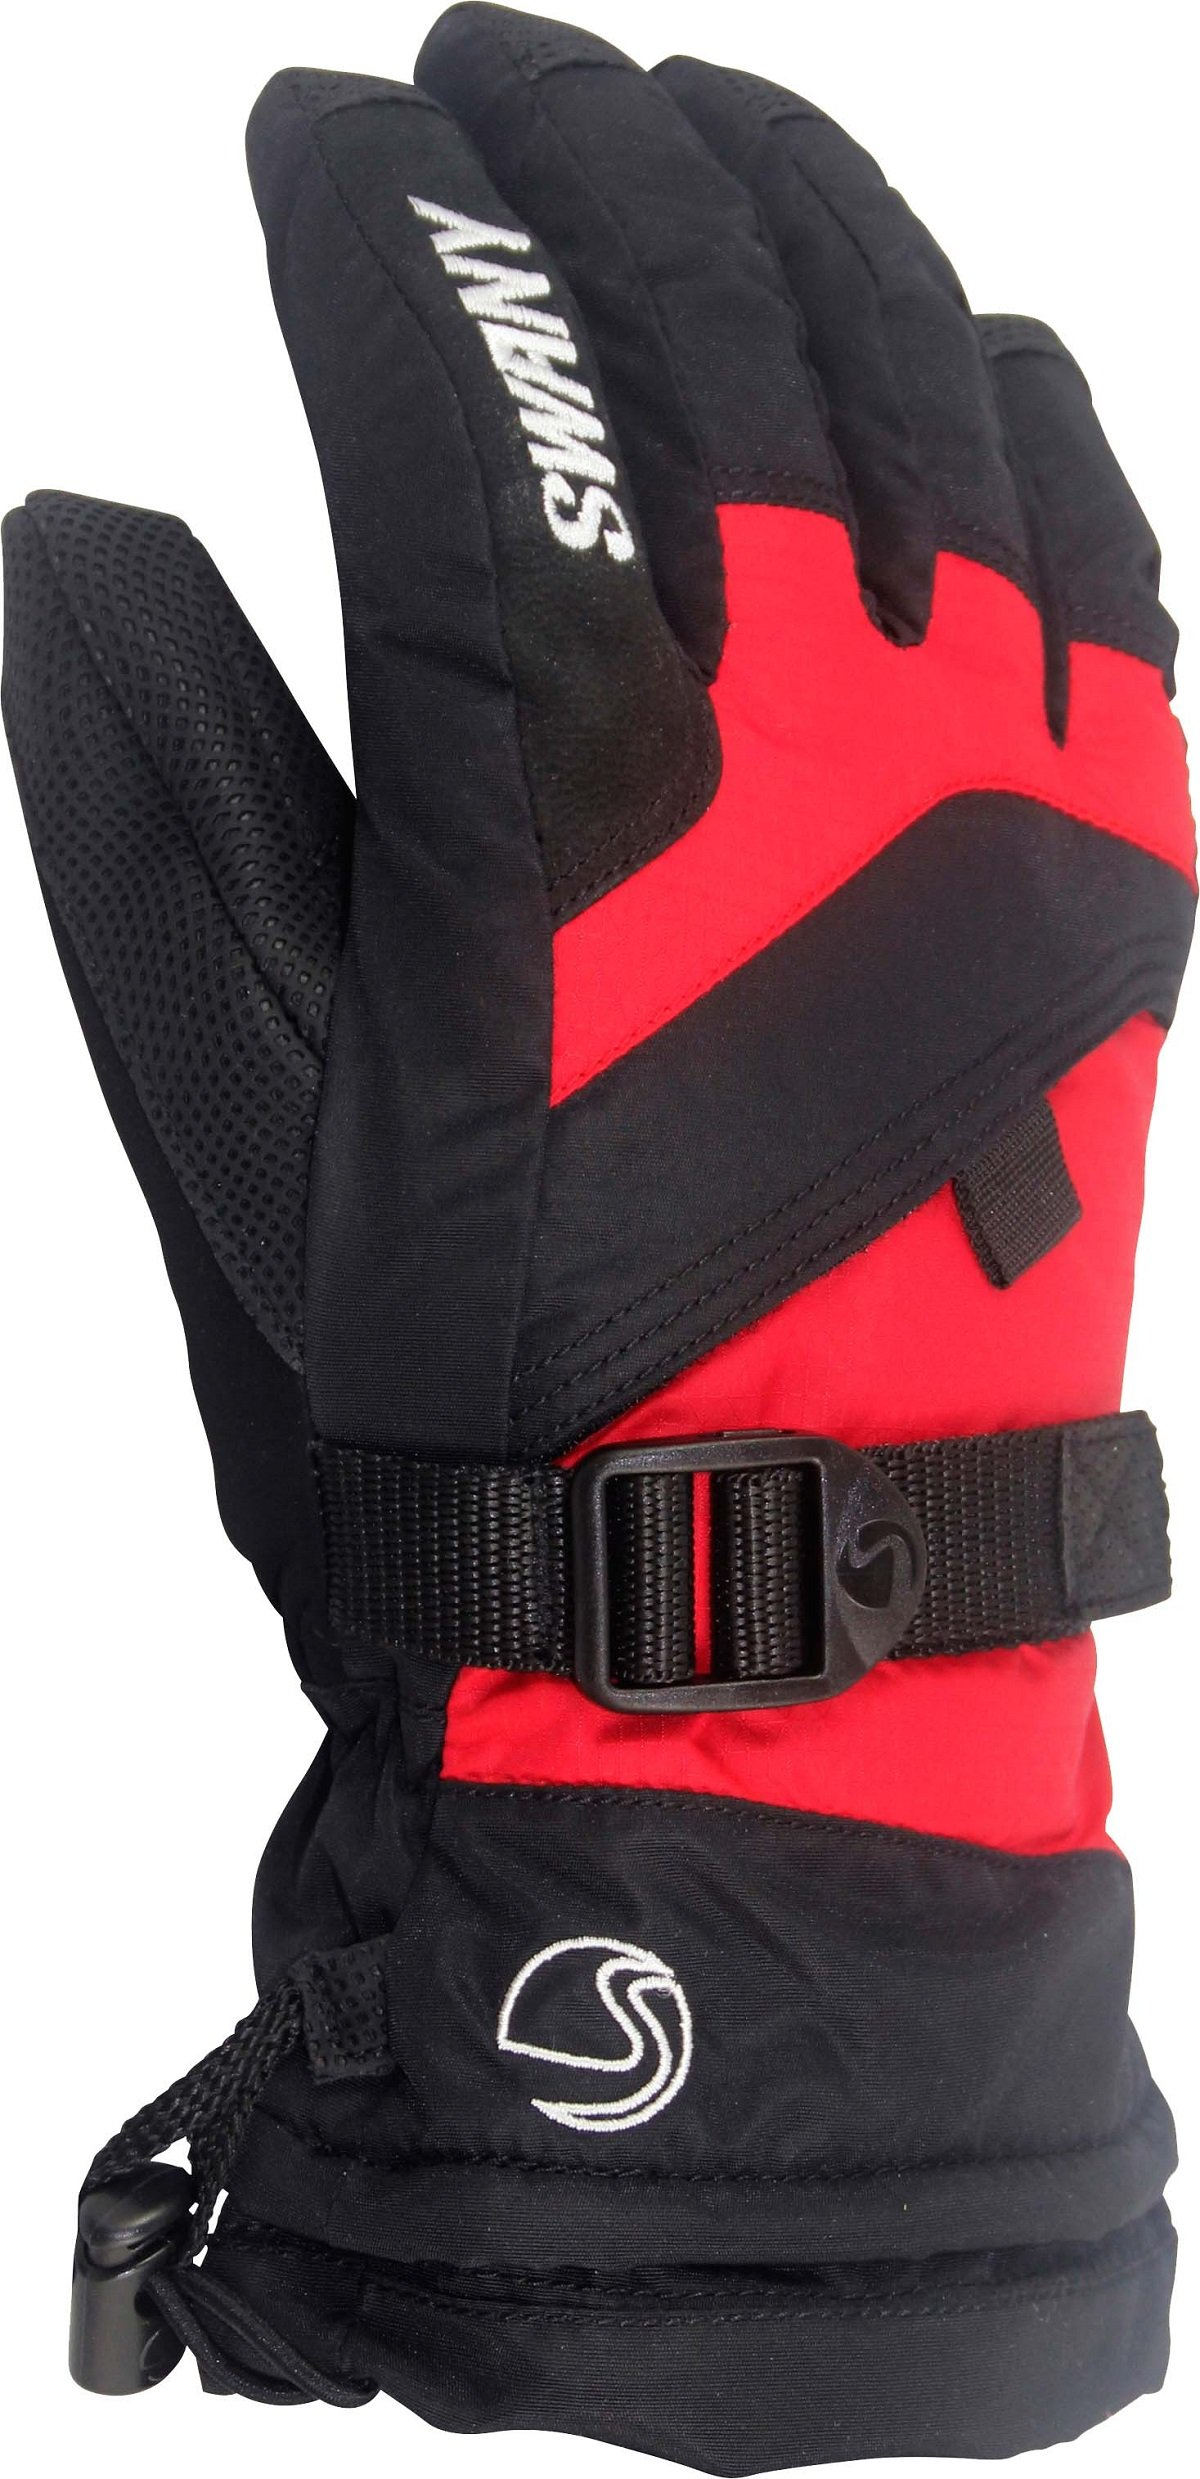 SWANY YOUTH X-OVER JR GLOVE LARGE BLACK/RED by SWANY